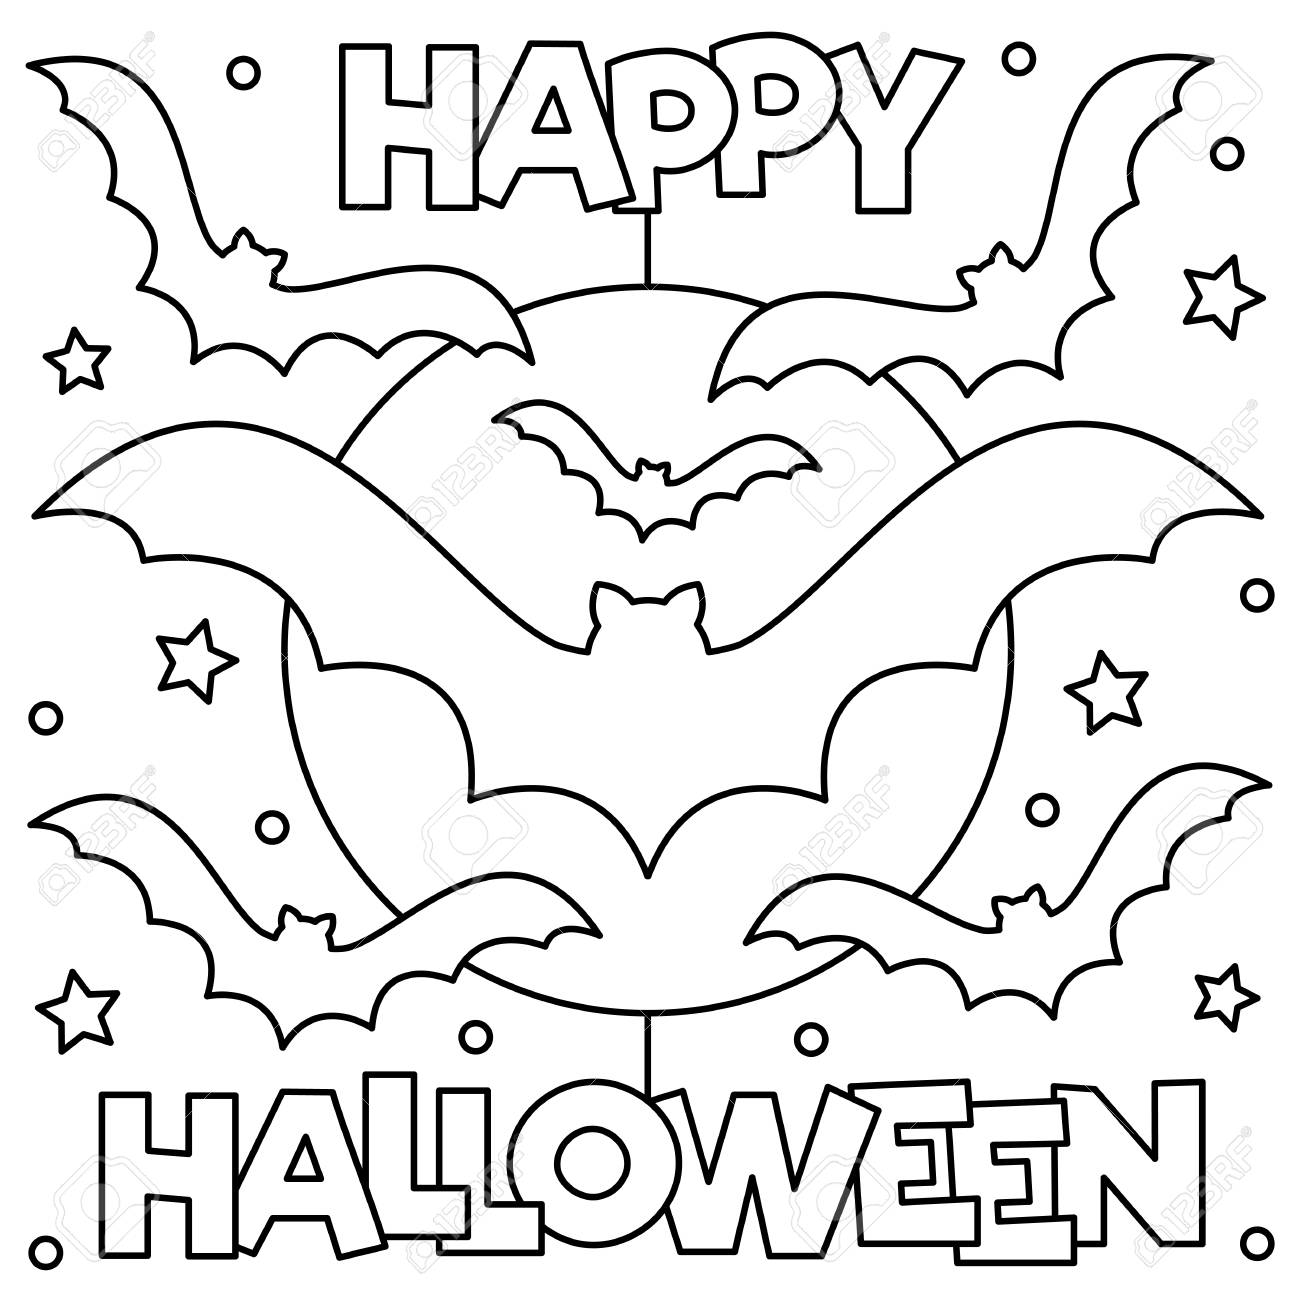 Happy Halloween. Coloring Page. Black And White Vector Illustration Royalty Free Cliparts, Vectors, And Stock Illustration. Image 111631549.